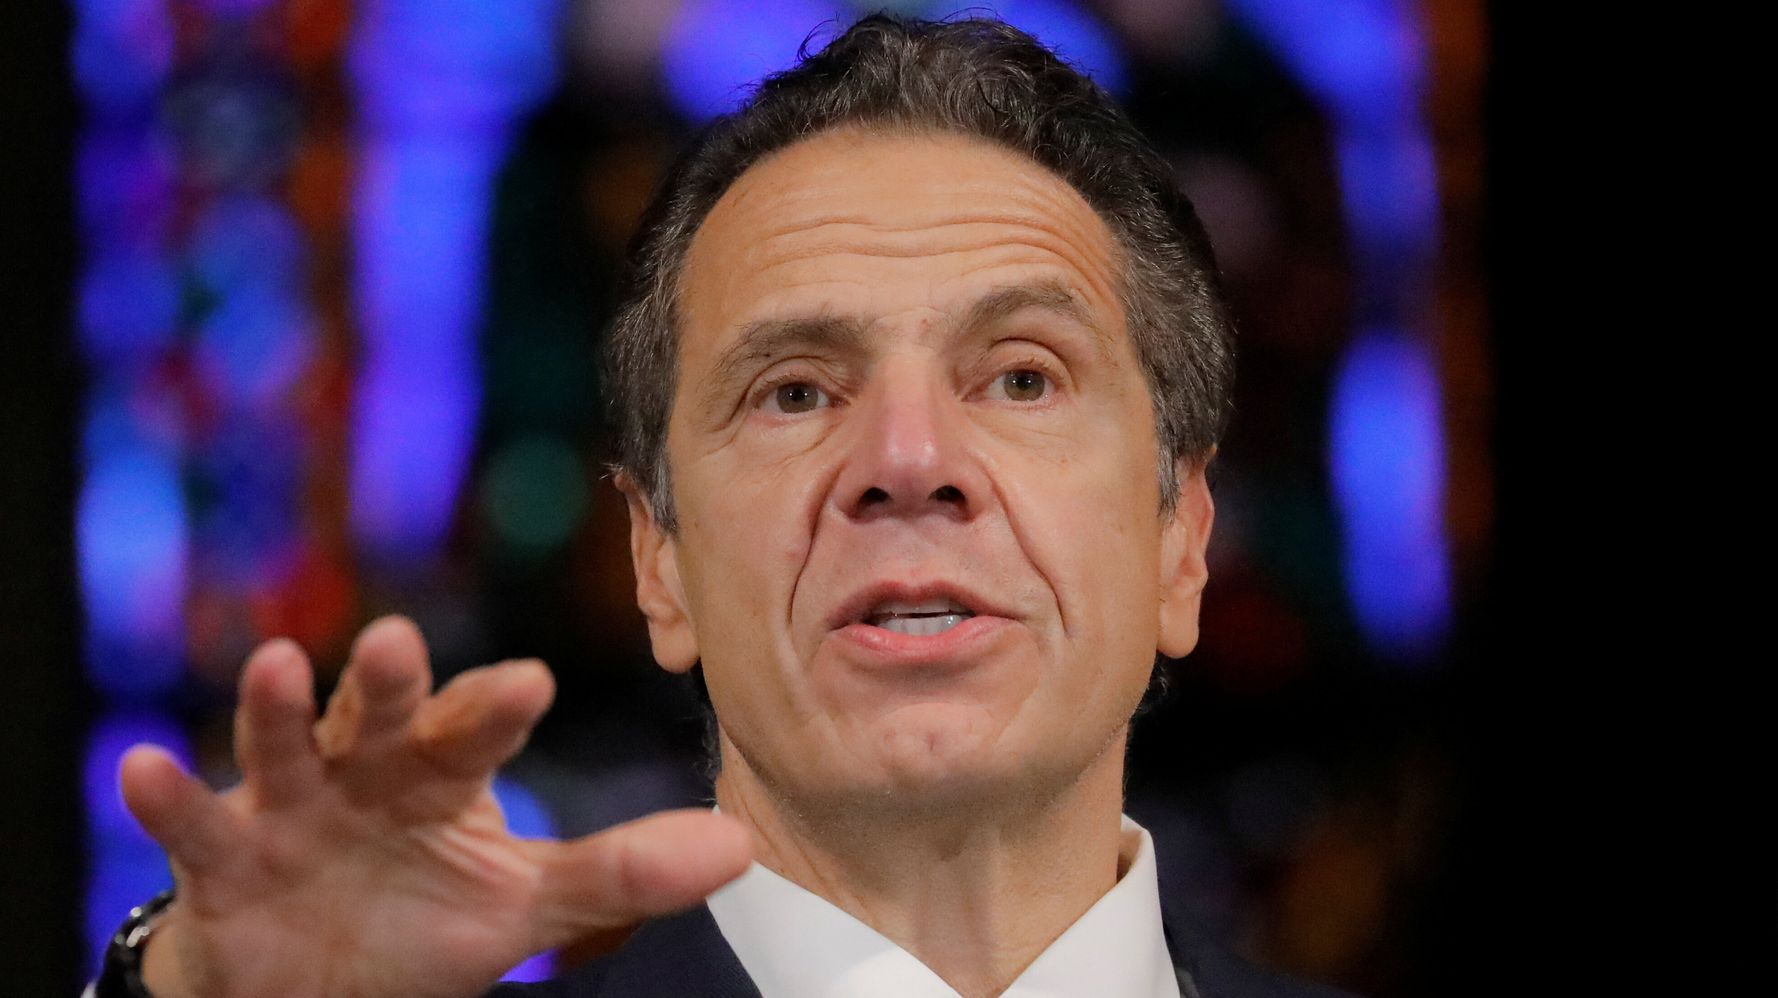 Cuomo Bashes Trump, Threatens Legal Action For Equal Access To COVID-19 Vaccine